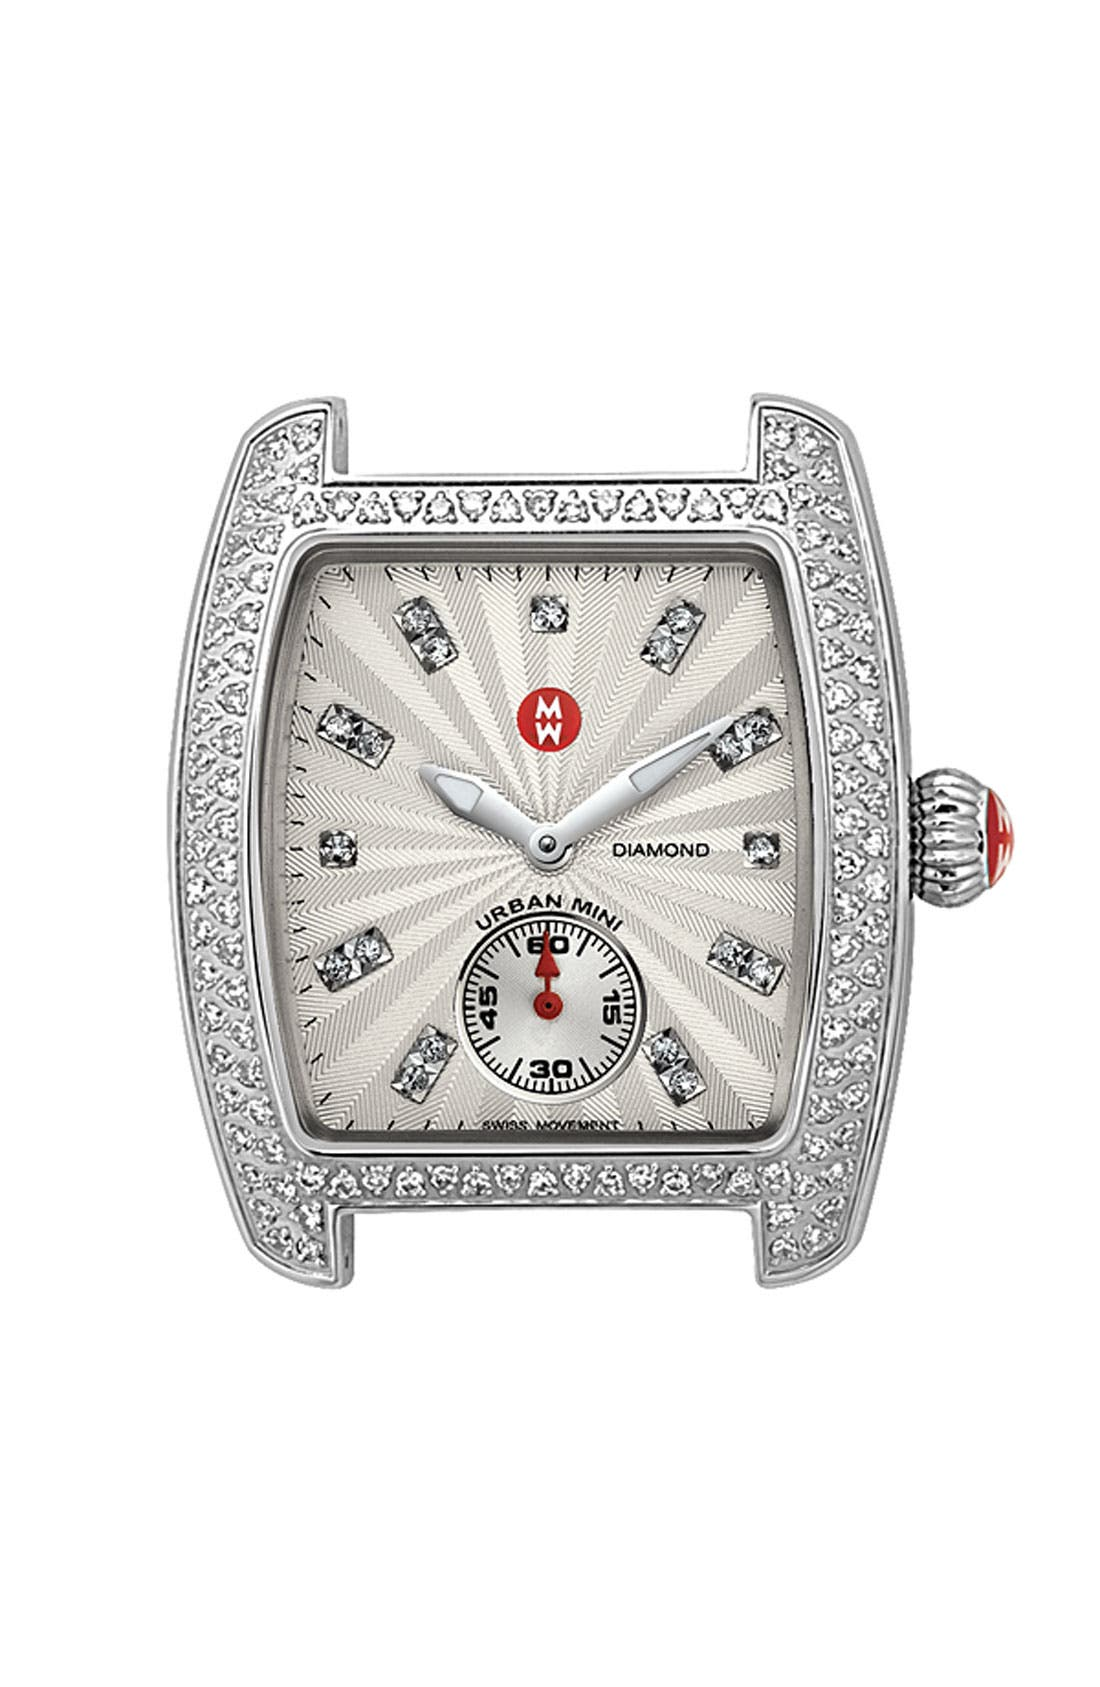 Main Image - MICHELE 'Urban Mini Diamond' Diamond Dial Customizable Watch